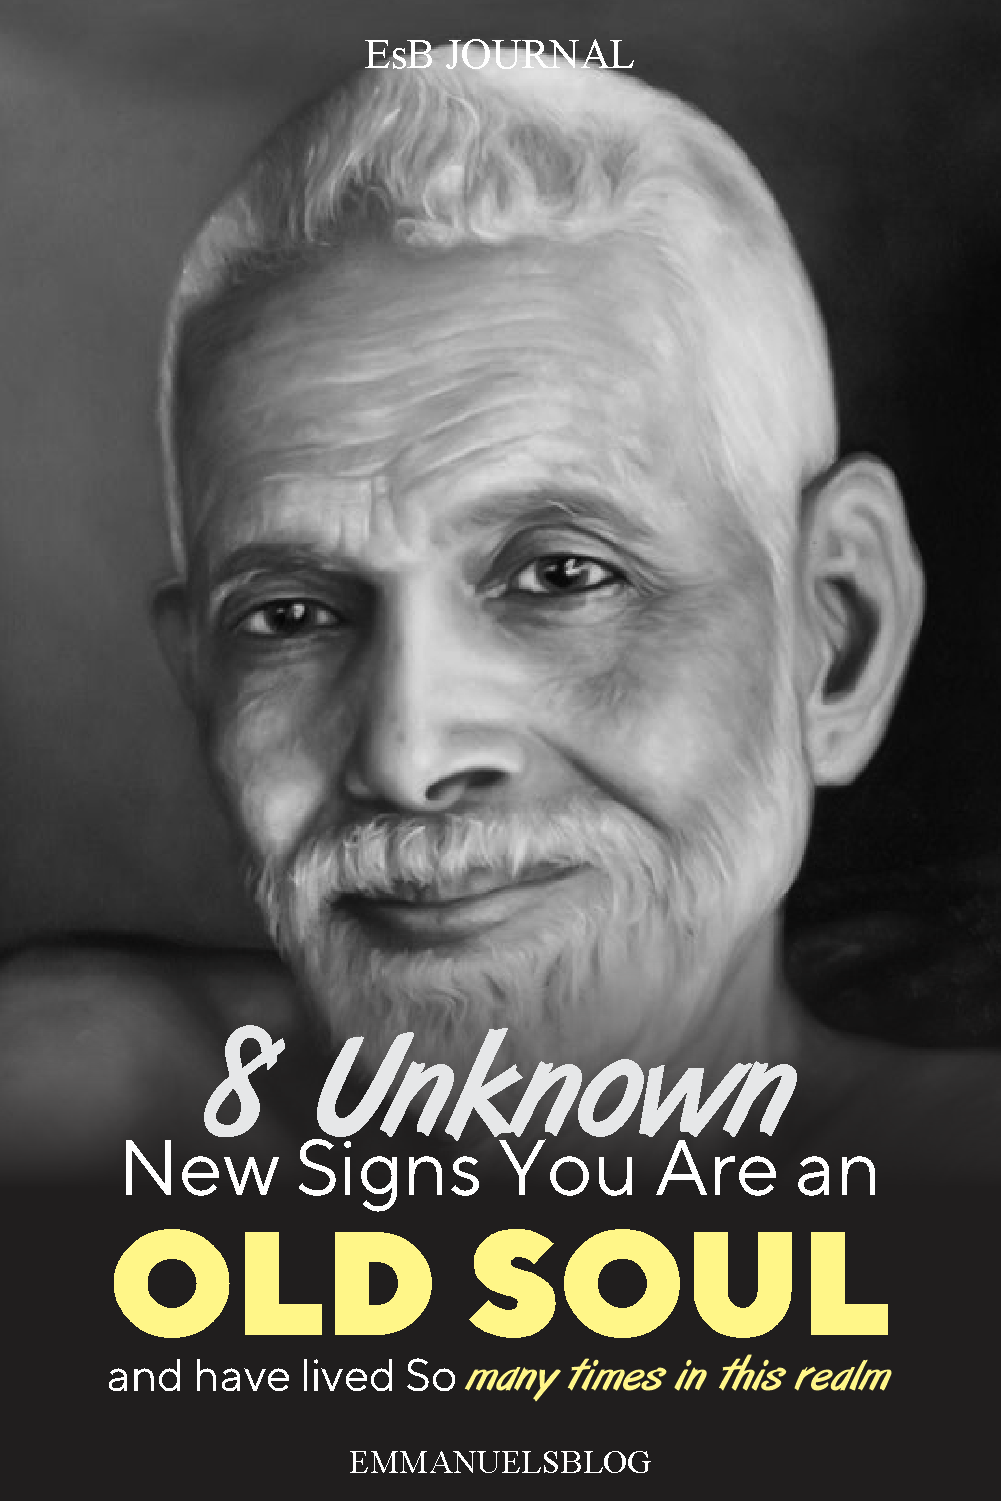 8 Unknown New Signs You Are an Old Soul and have lived So many times in this realm